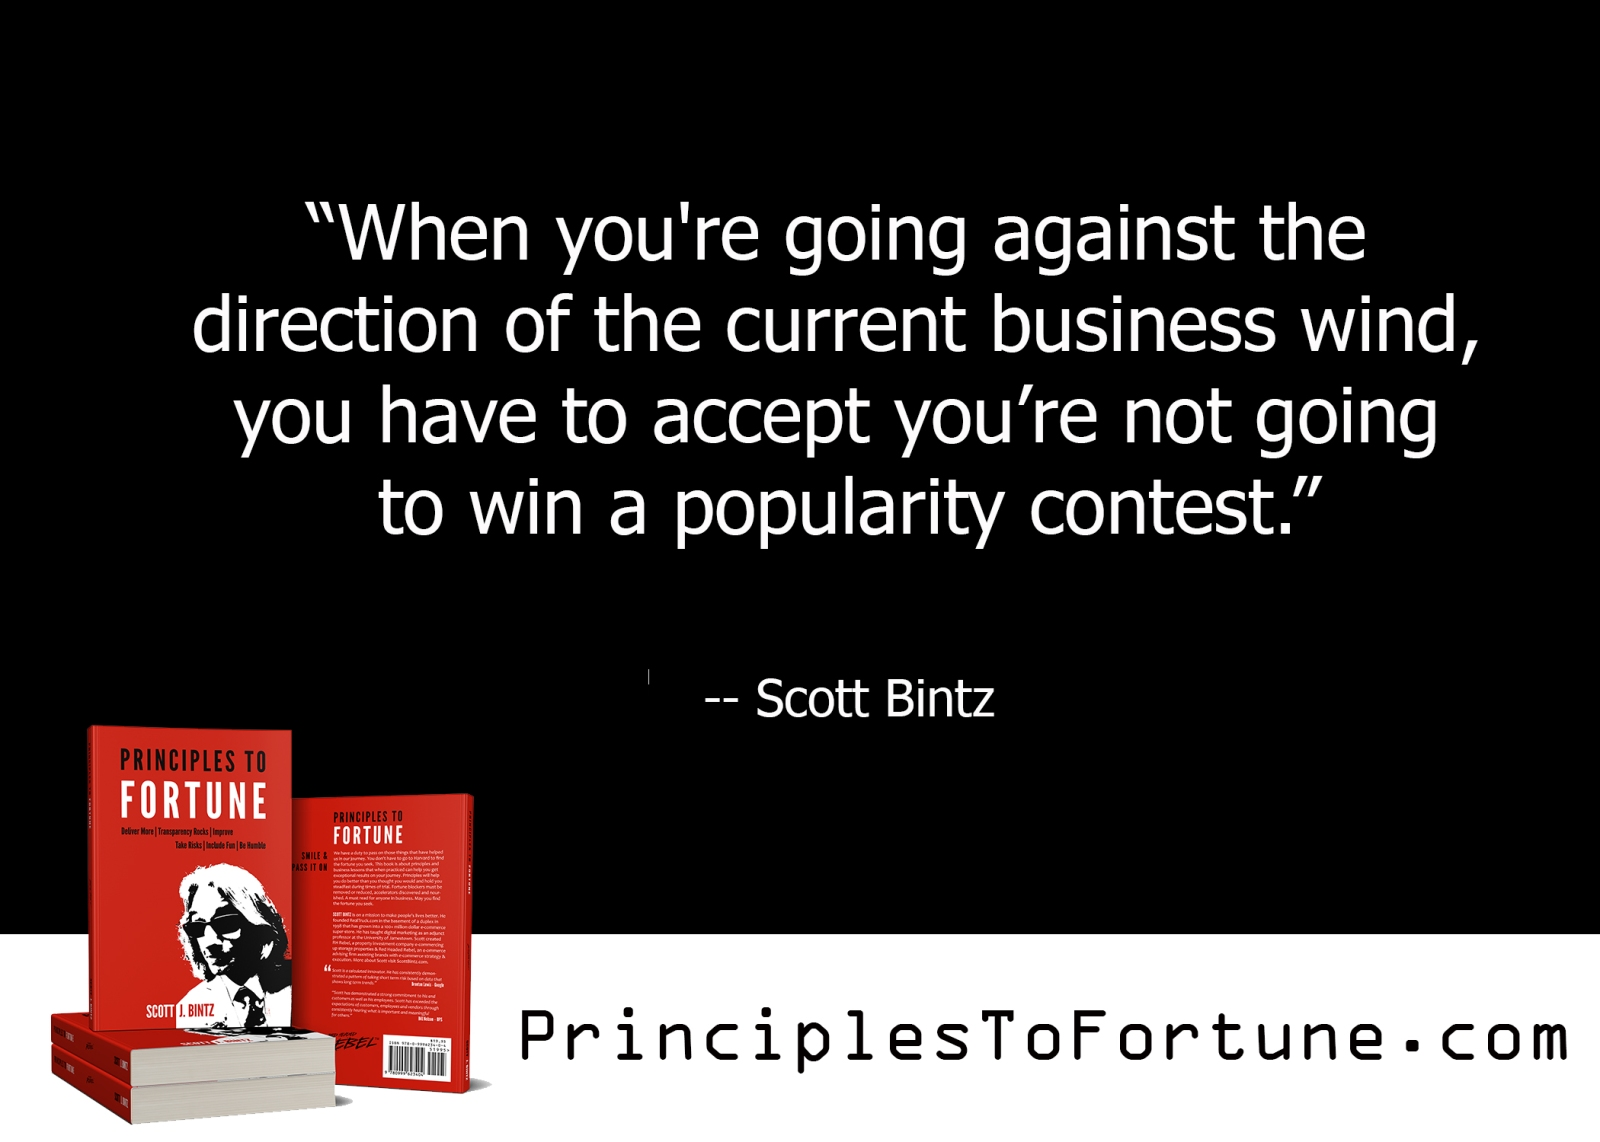 """""""When you're going against the direction of the current business wind, you have to accept you're not going to win a popularity contest."""" Quote from the book, Principles To Fortune by Scott Bintz"""